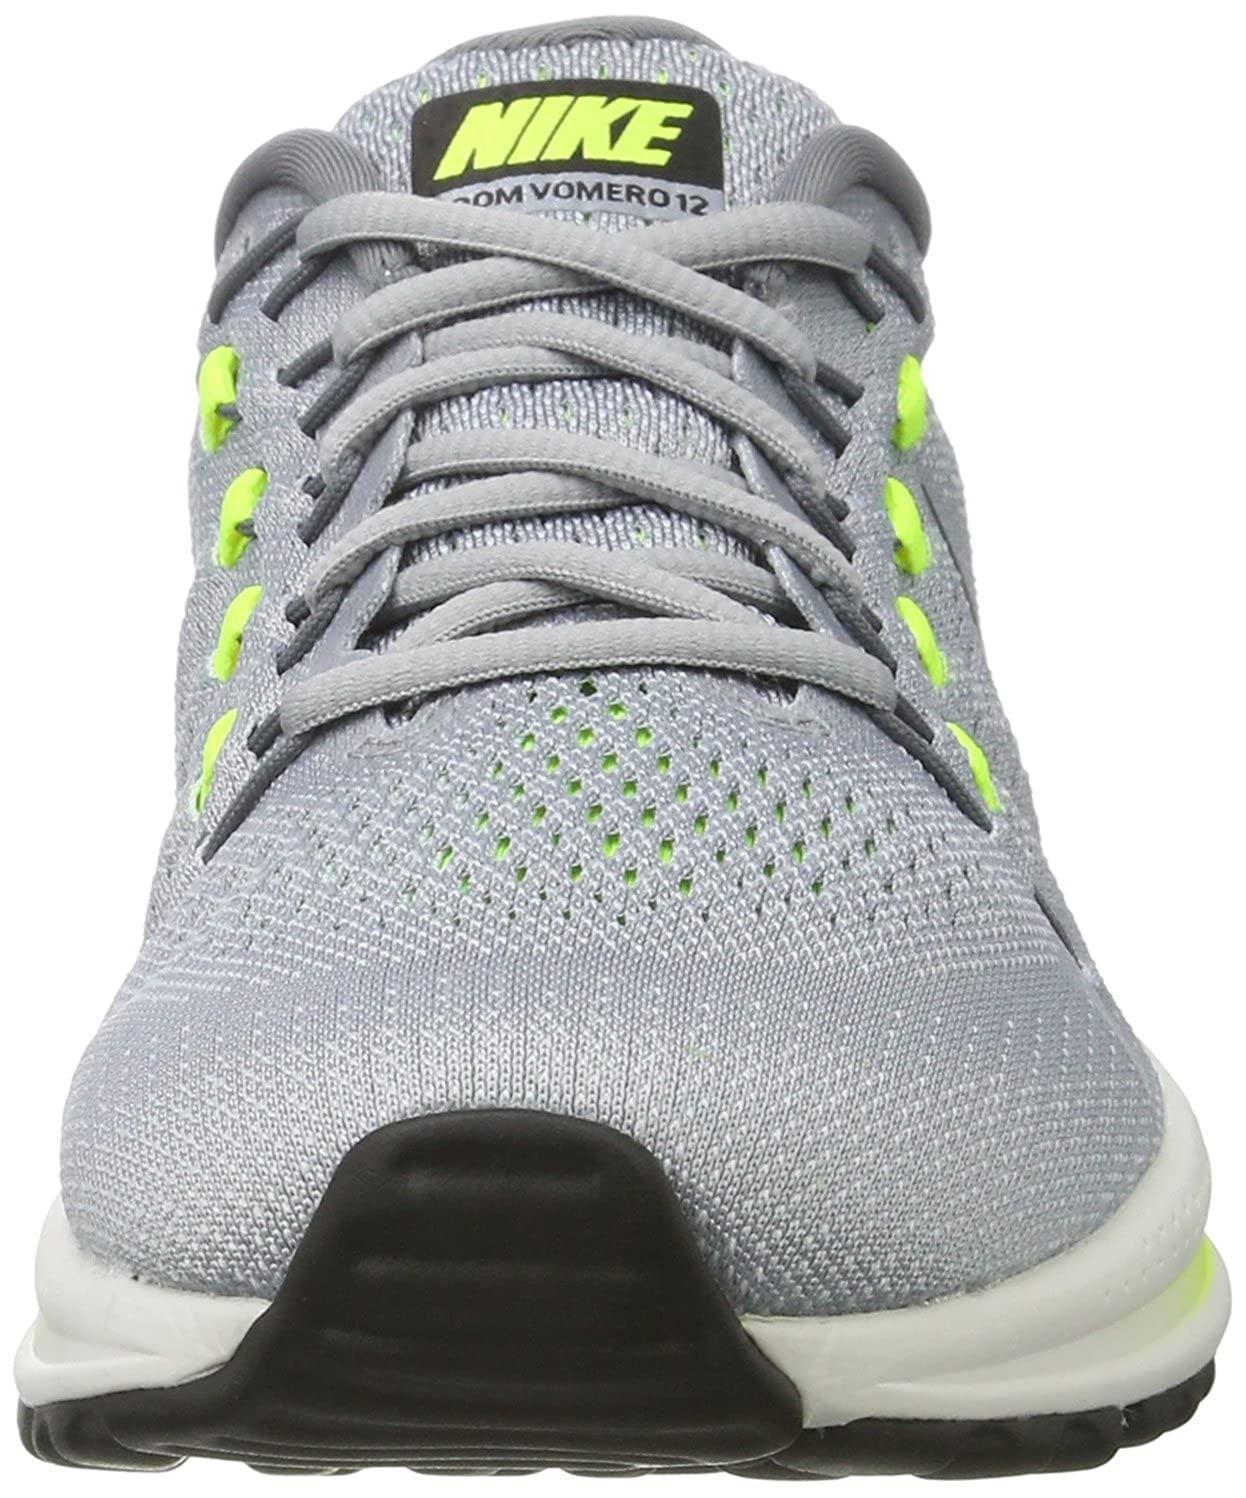 newest collection 37d2c 37489 Amazon.com   Nike Mens Air Zoom Vomero 12 Running Shoes   Road Running